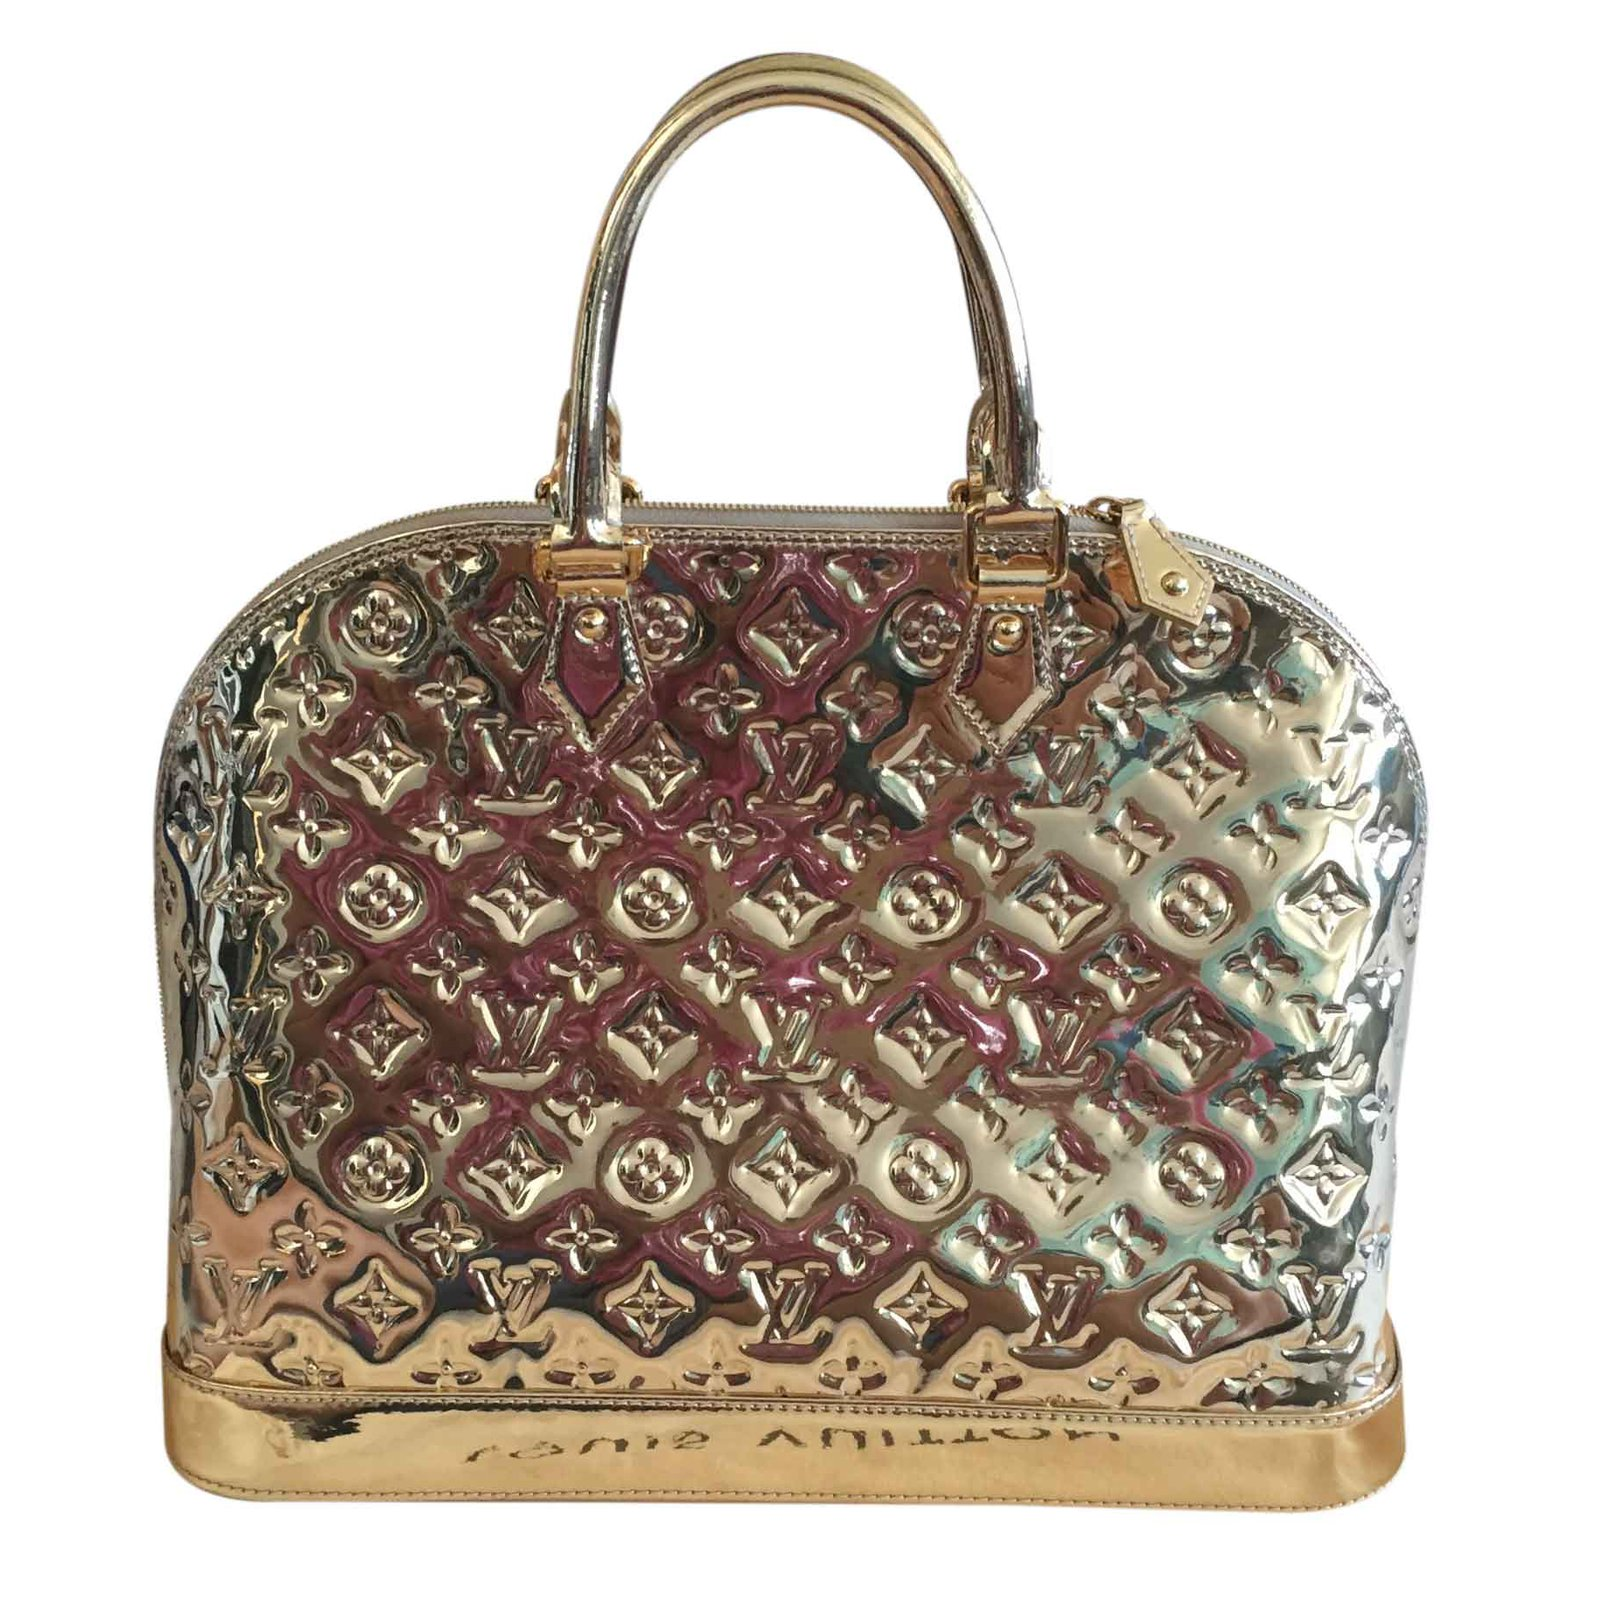 83cd81a4d2 Sac A Main Louis Vuitton Alma Mm | Stanford Center for Opportunity ...